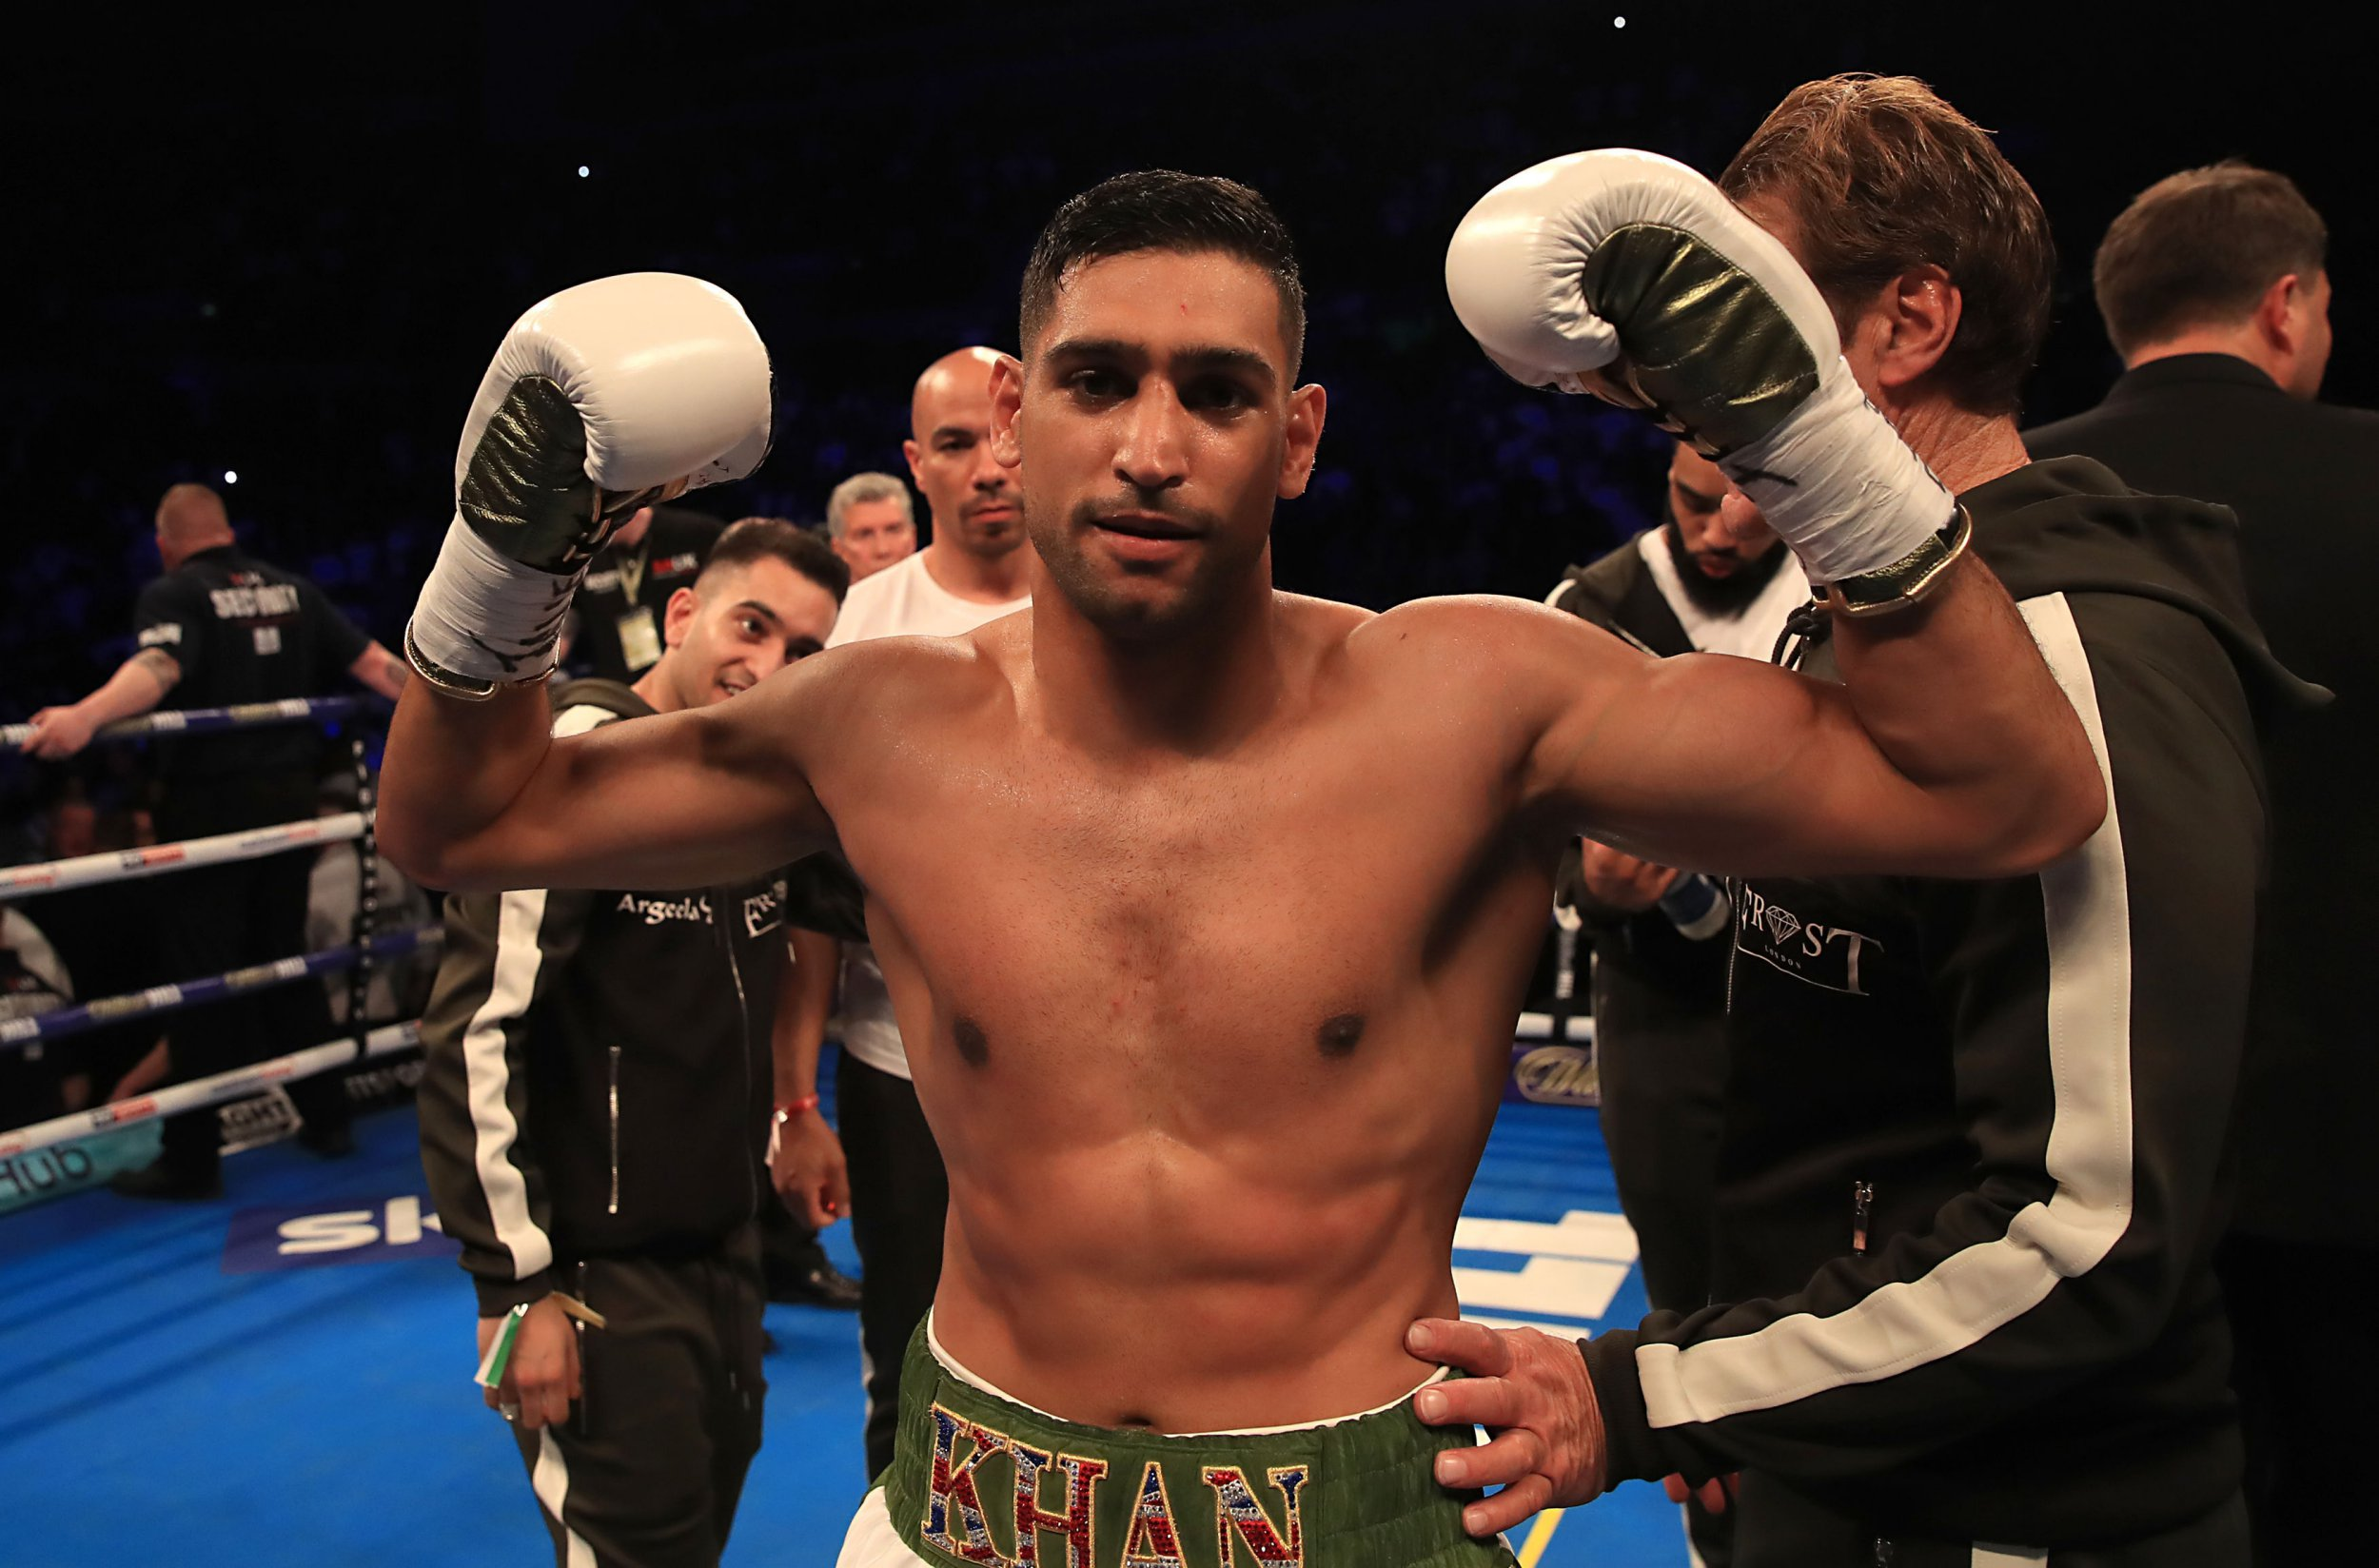 Amir Khan slams claims he cheated on his wife 17 days after she gave birth as 'total nonsense'